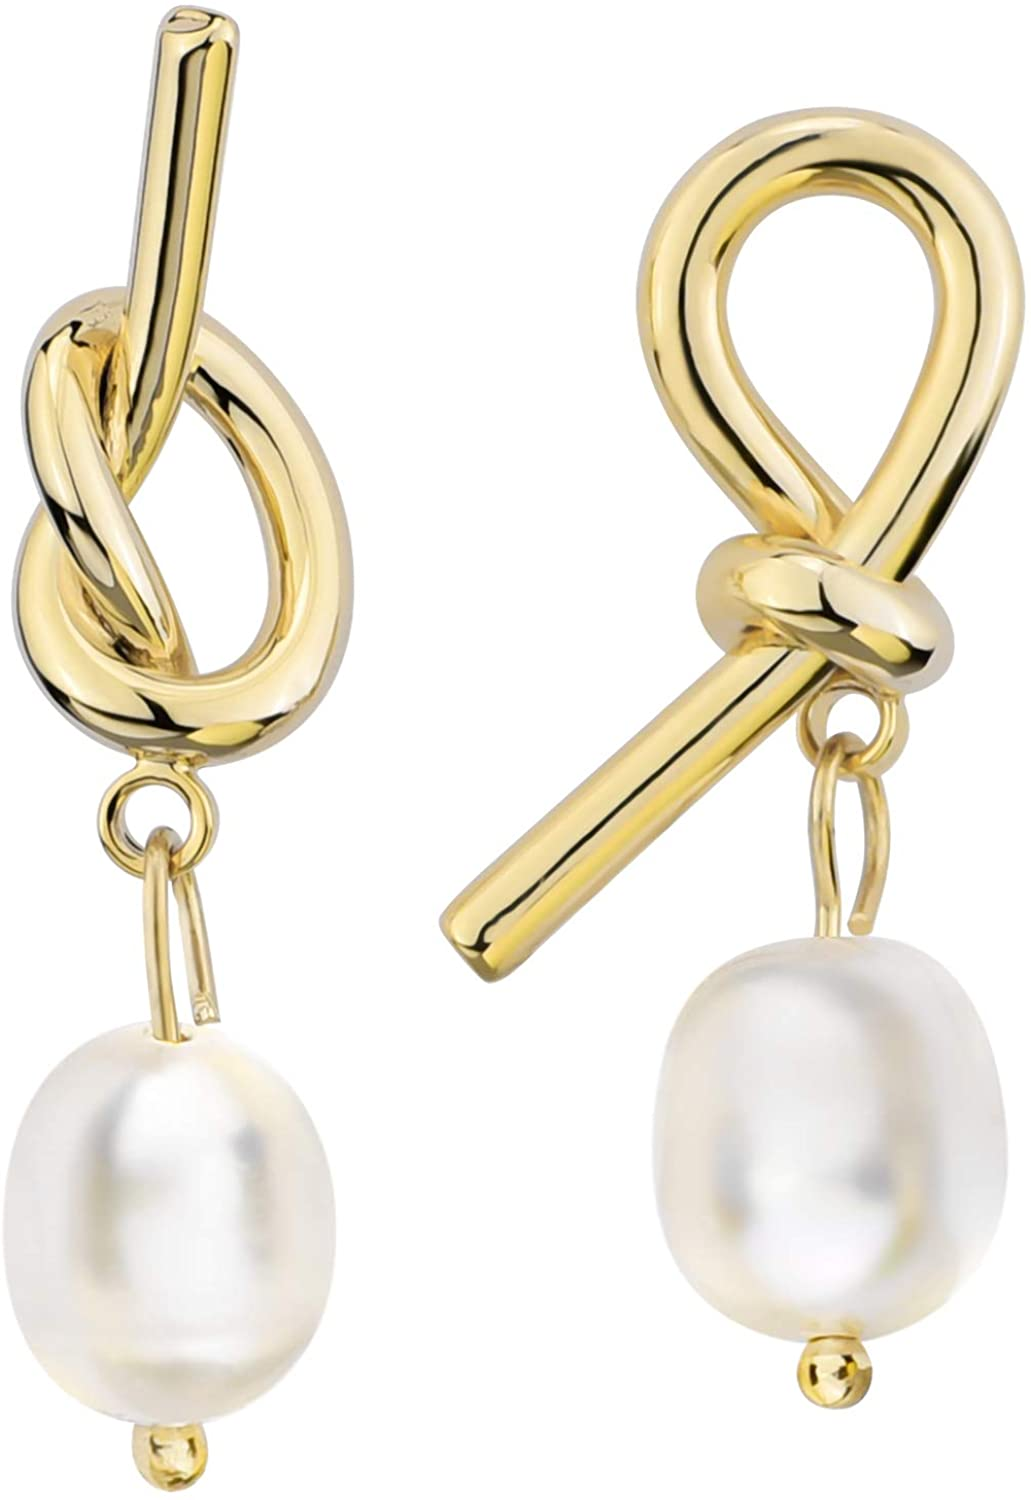 MOI 14K Gold Plated Natural Pearl Earrings Freshwater Pearls Drop Earrings for Women Sterling Silver Post